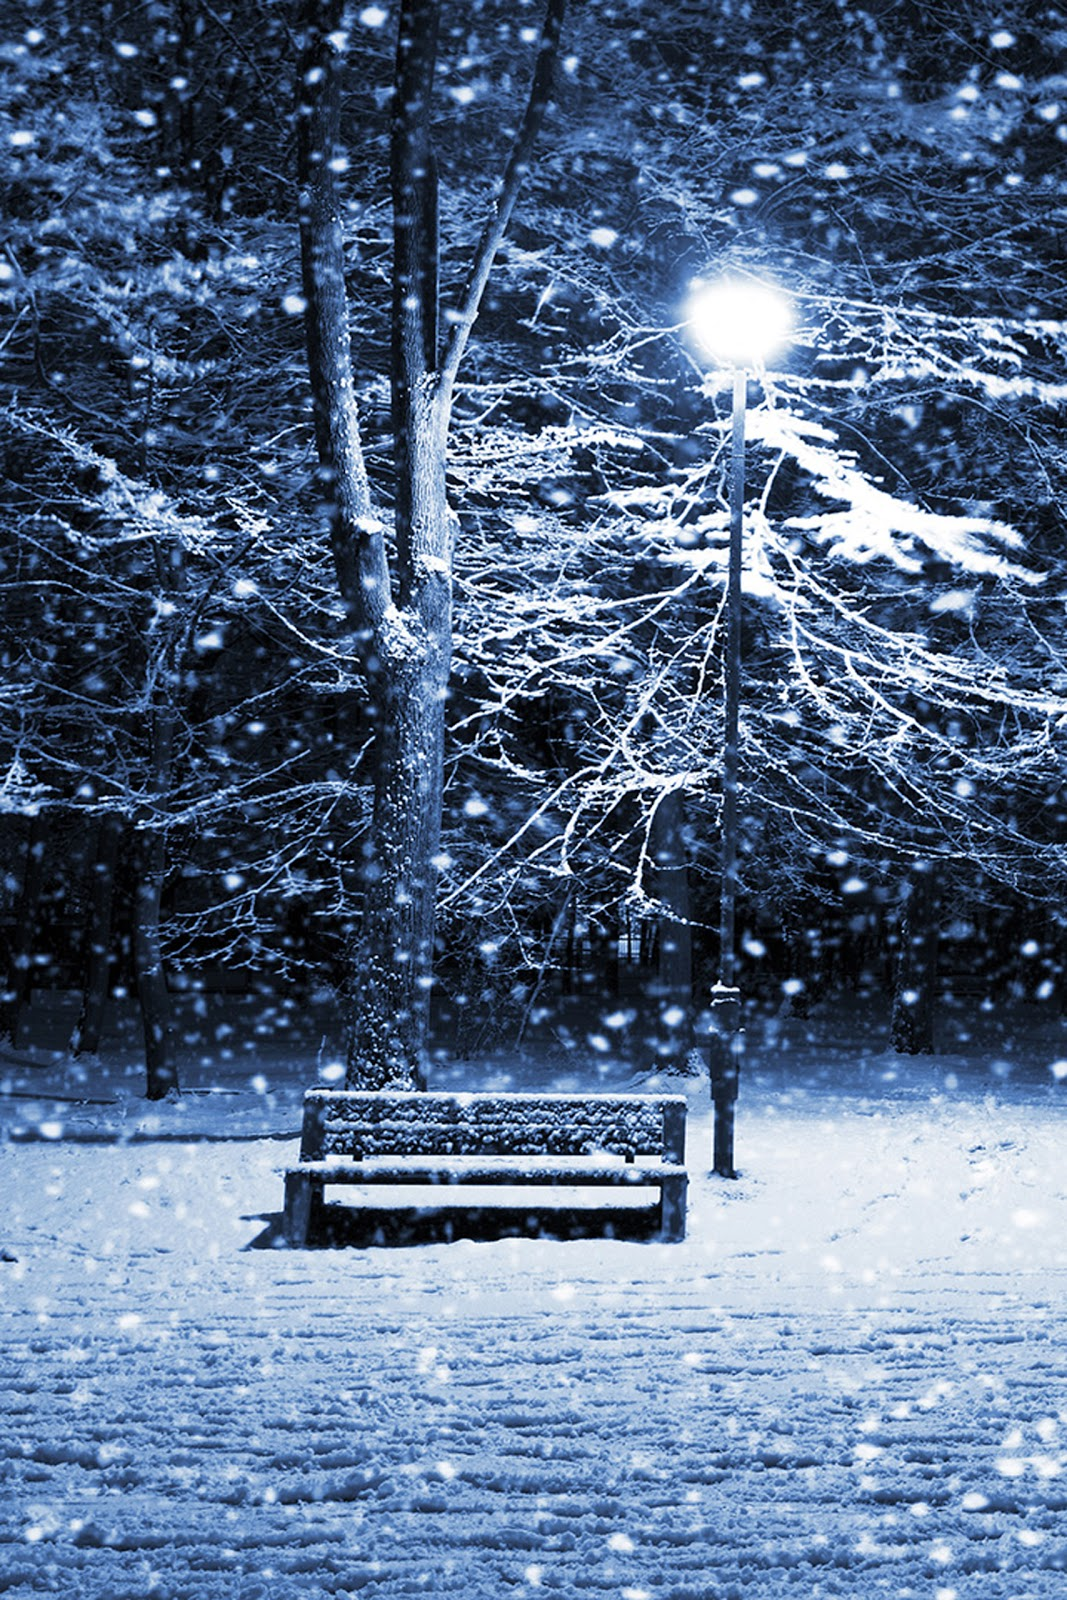 Tumblr iphone wallpaper winter - Tumblr Winter Iphone Wallpaper Images Pictures Becuo